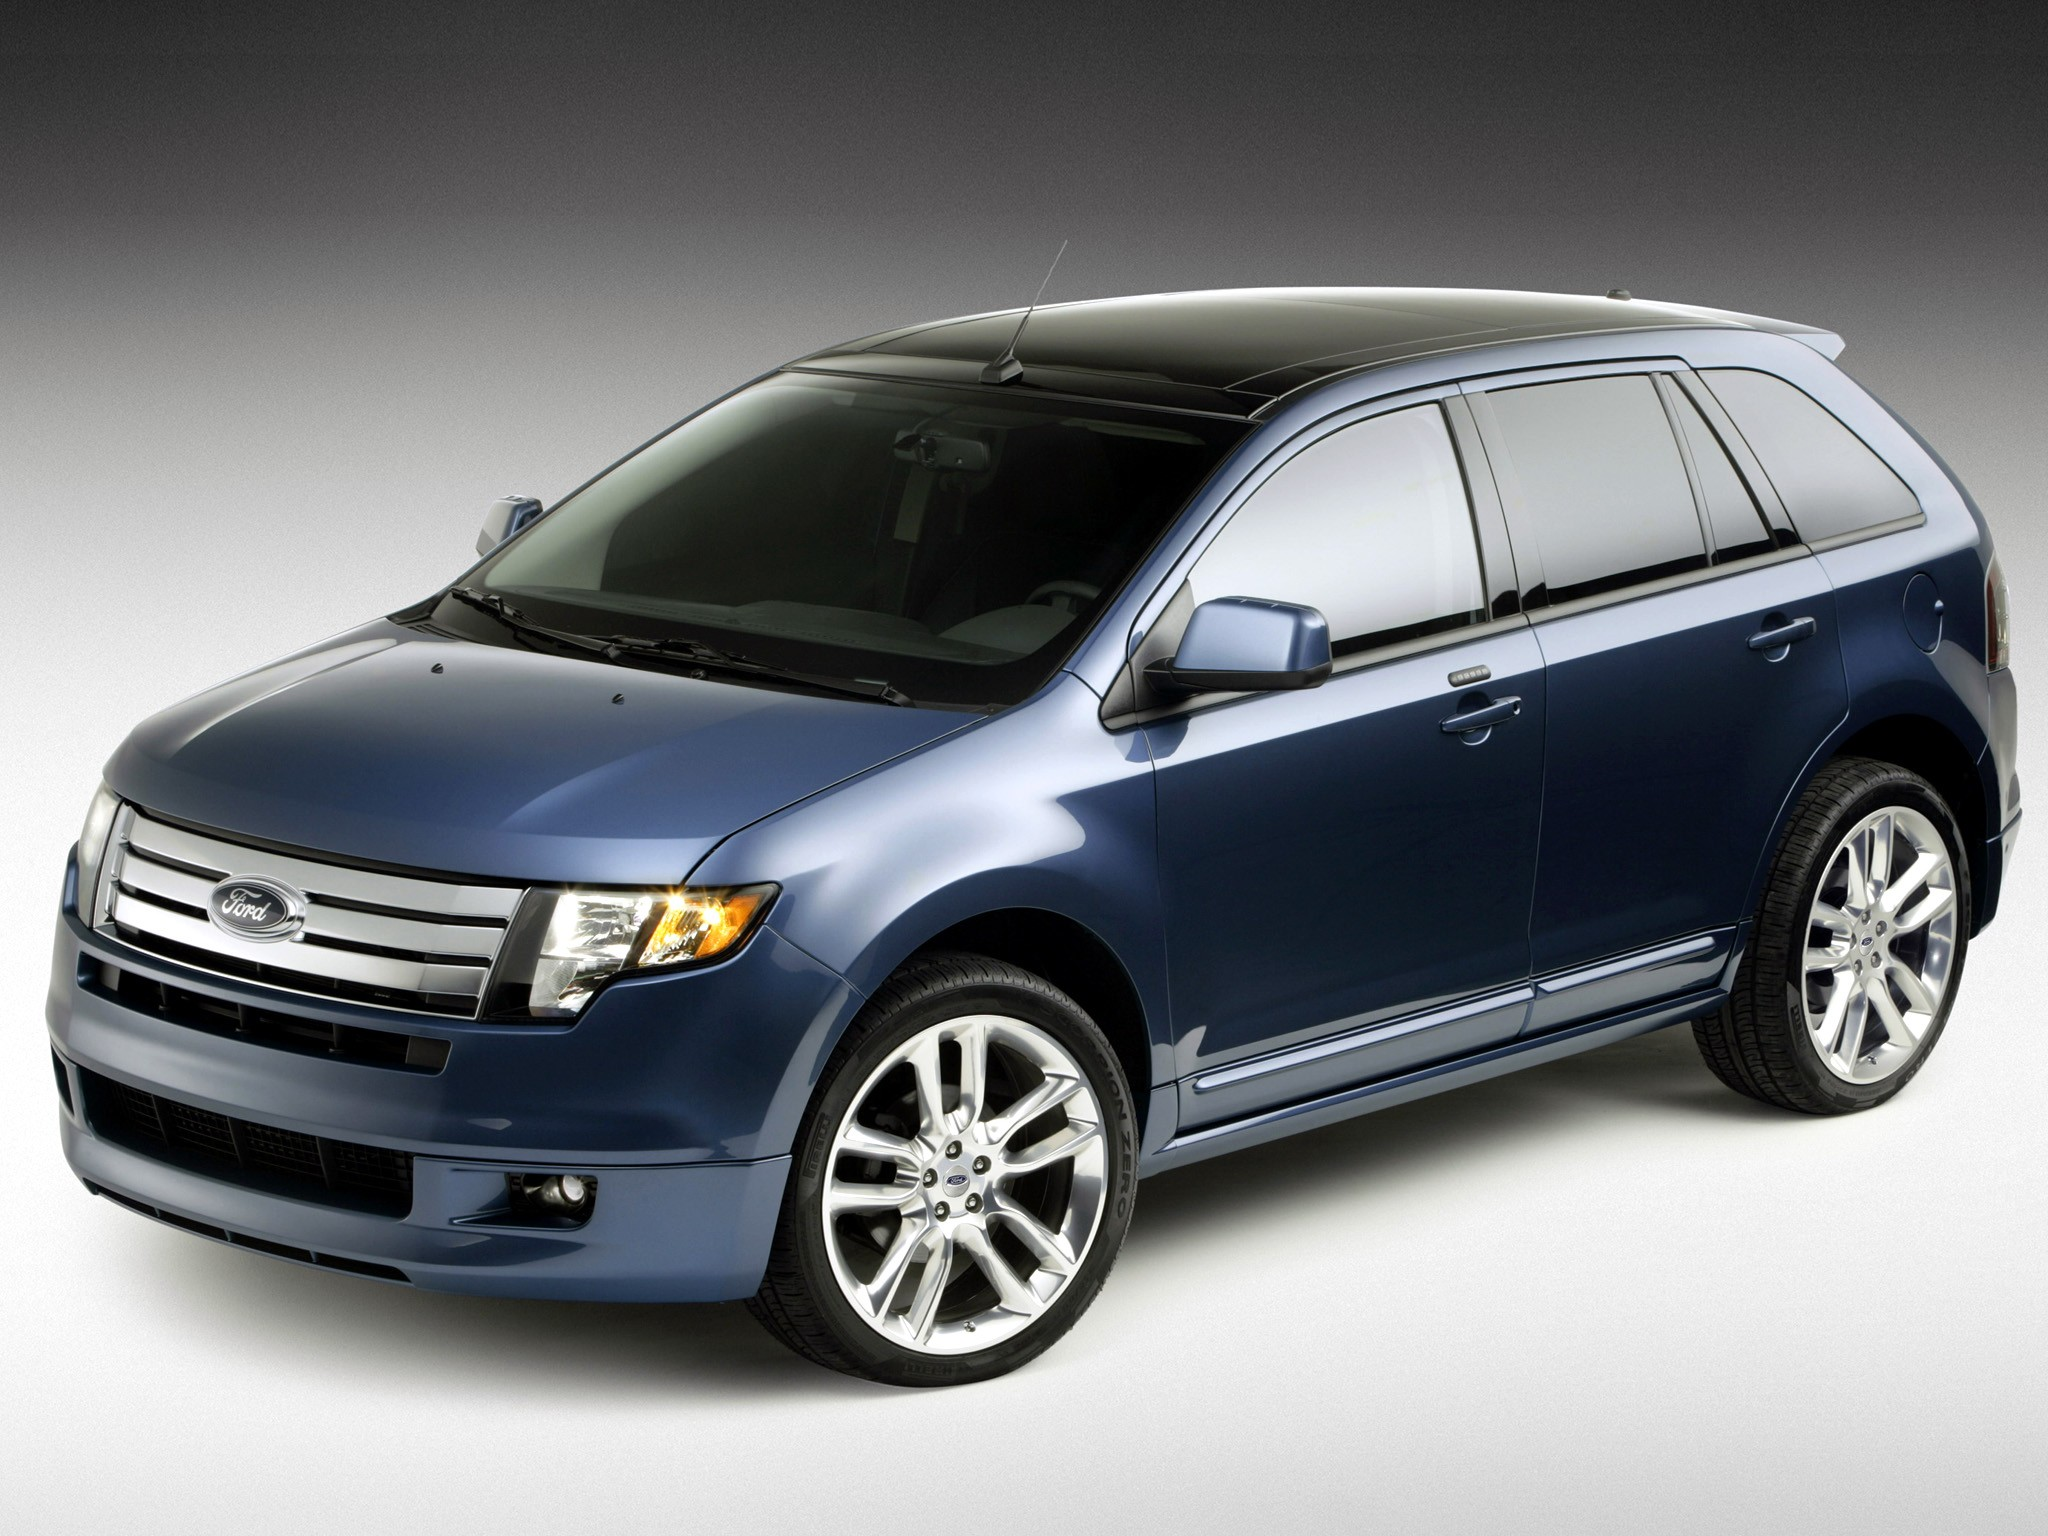 FORD Edge specs - 2006, 2007, 2008, 2009 - autoevolution